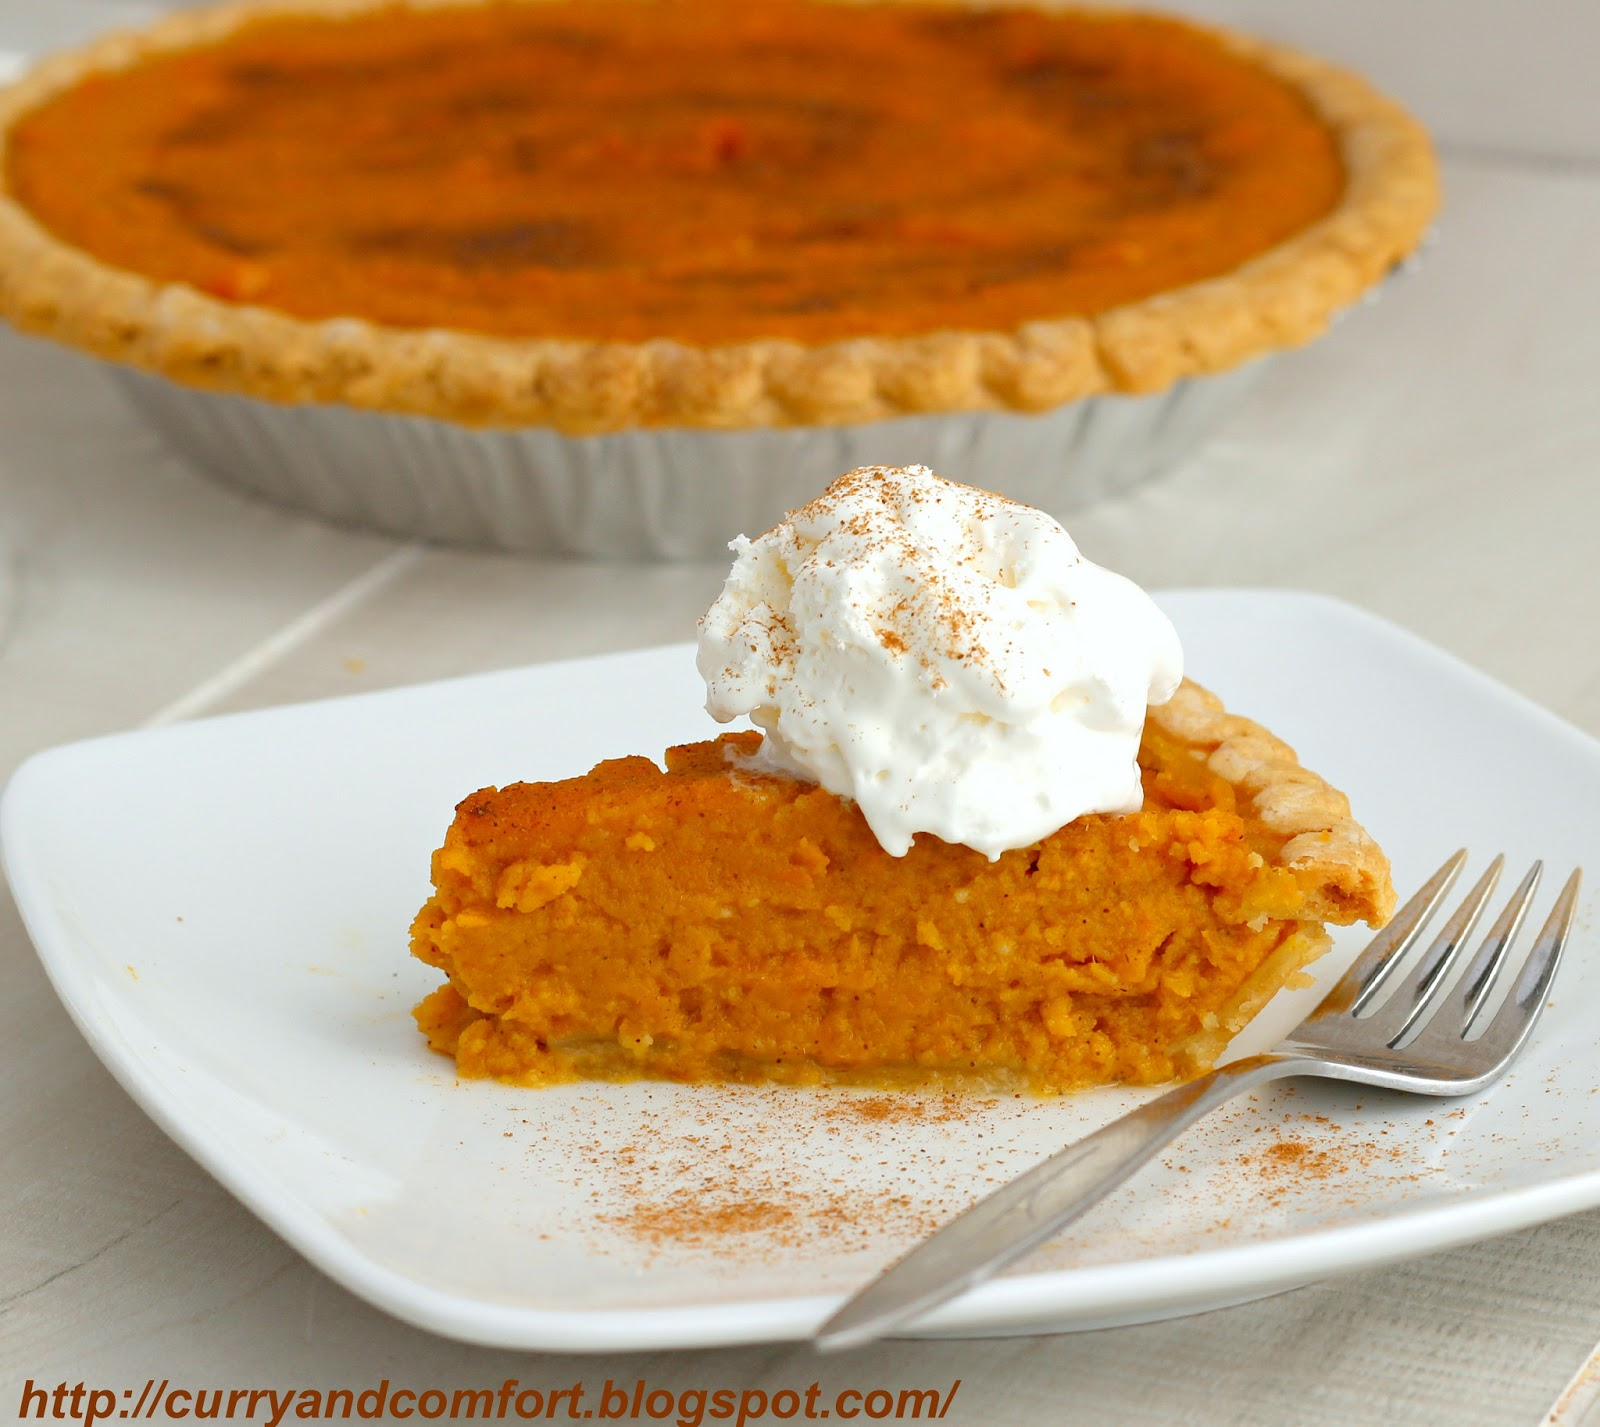 Curry and Comfort: My oh My, Sweet Potato Pie